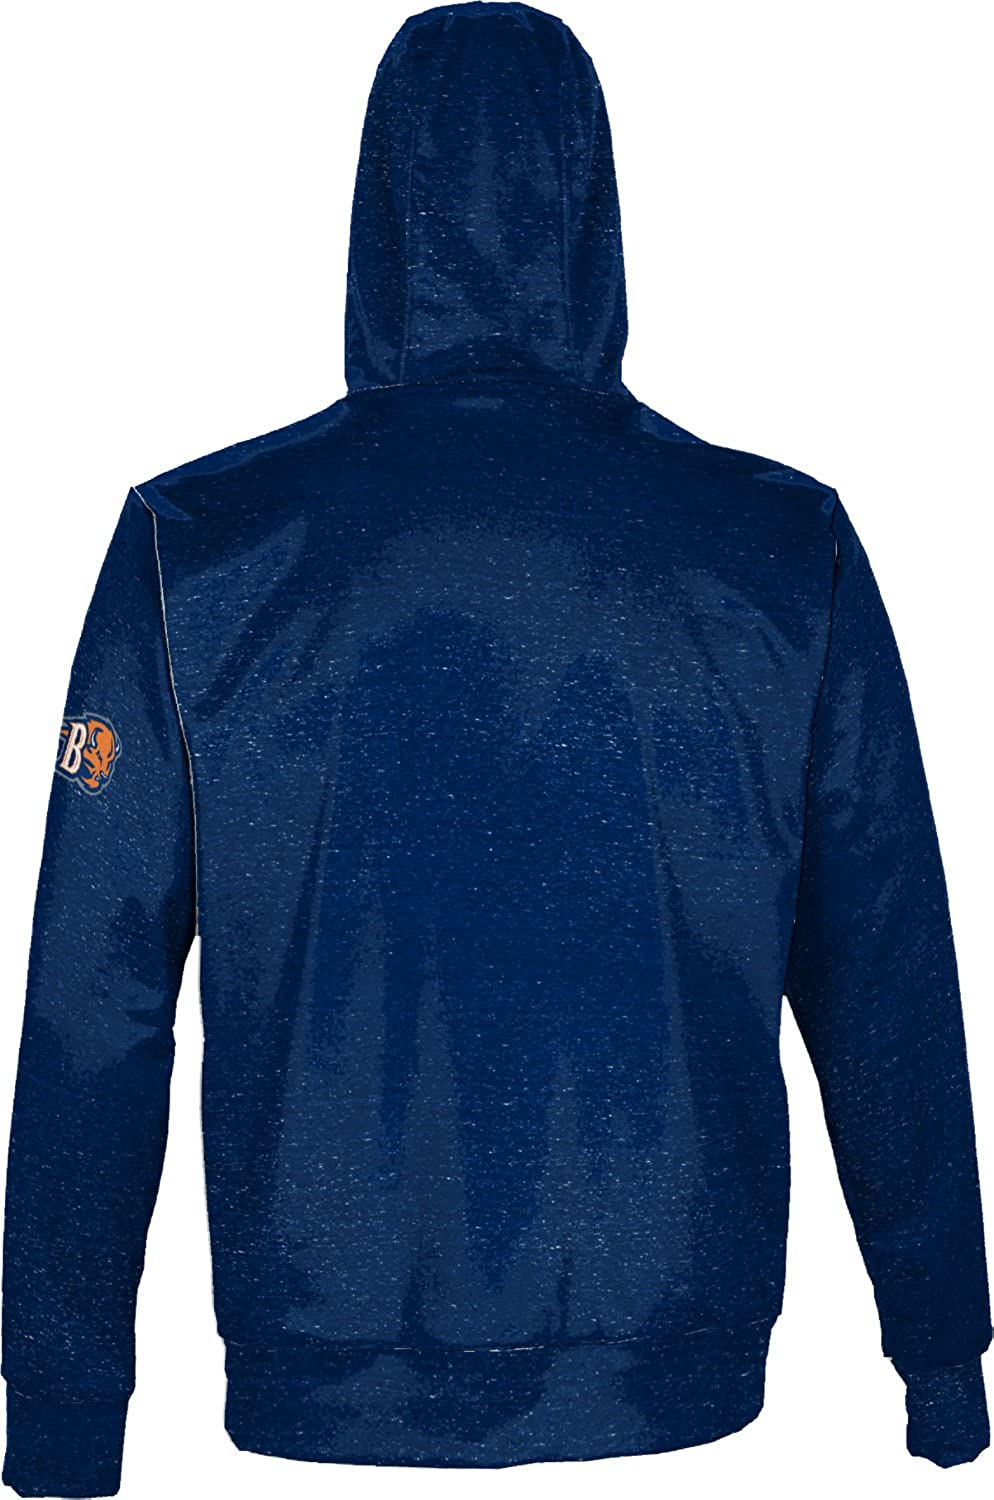 School Spirit Sweatshirt Heathered ProSphere Bucknell University Mens Pullover Hoodie